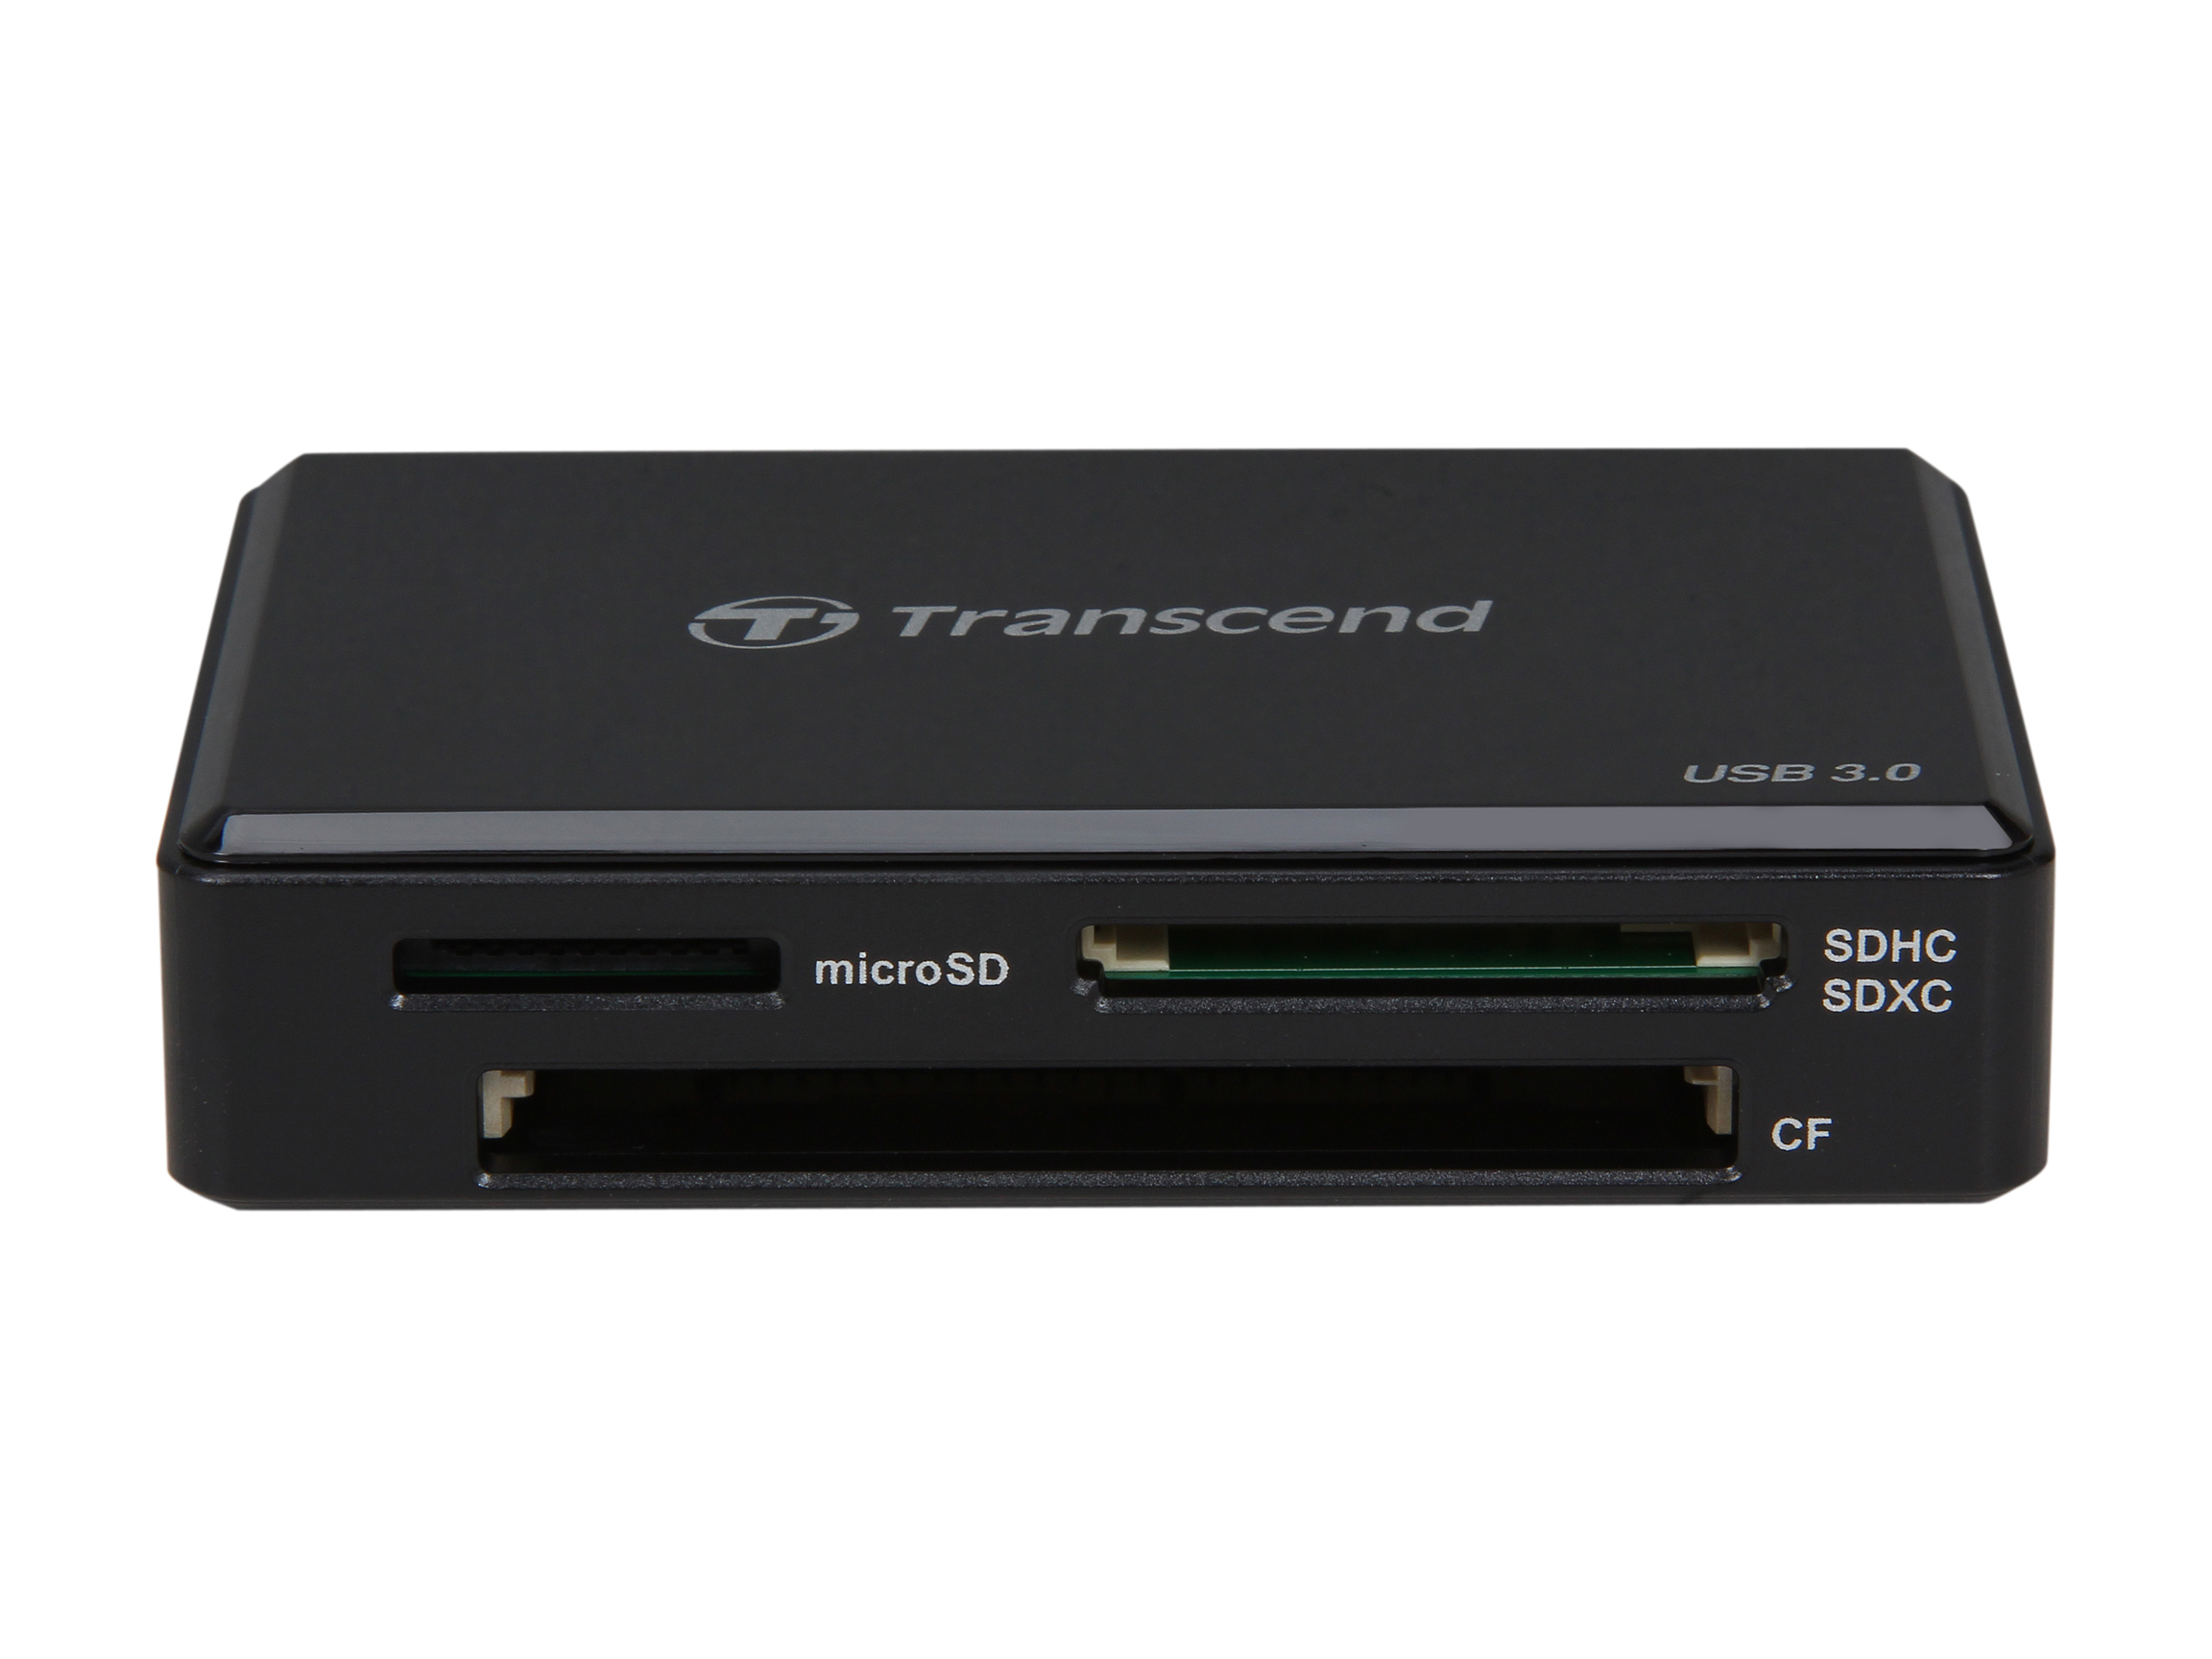 Transcend TS-RDF8K USB 3.0 Support SDHC/SDXC/UDMA6/UDMA7 CF and MSXC, with CF, SD, and Micro Slot   Flash Card Reader - Black